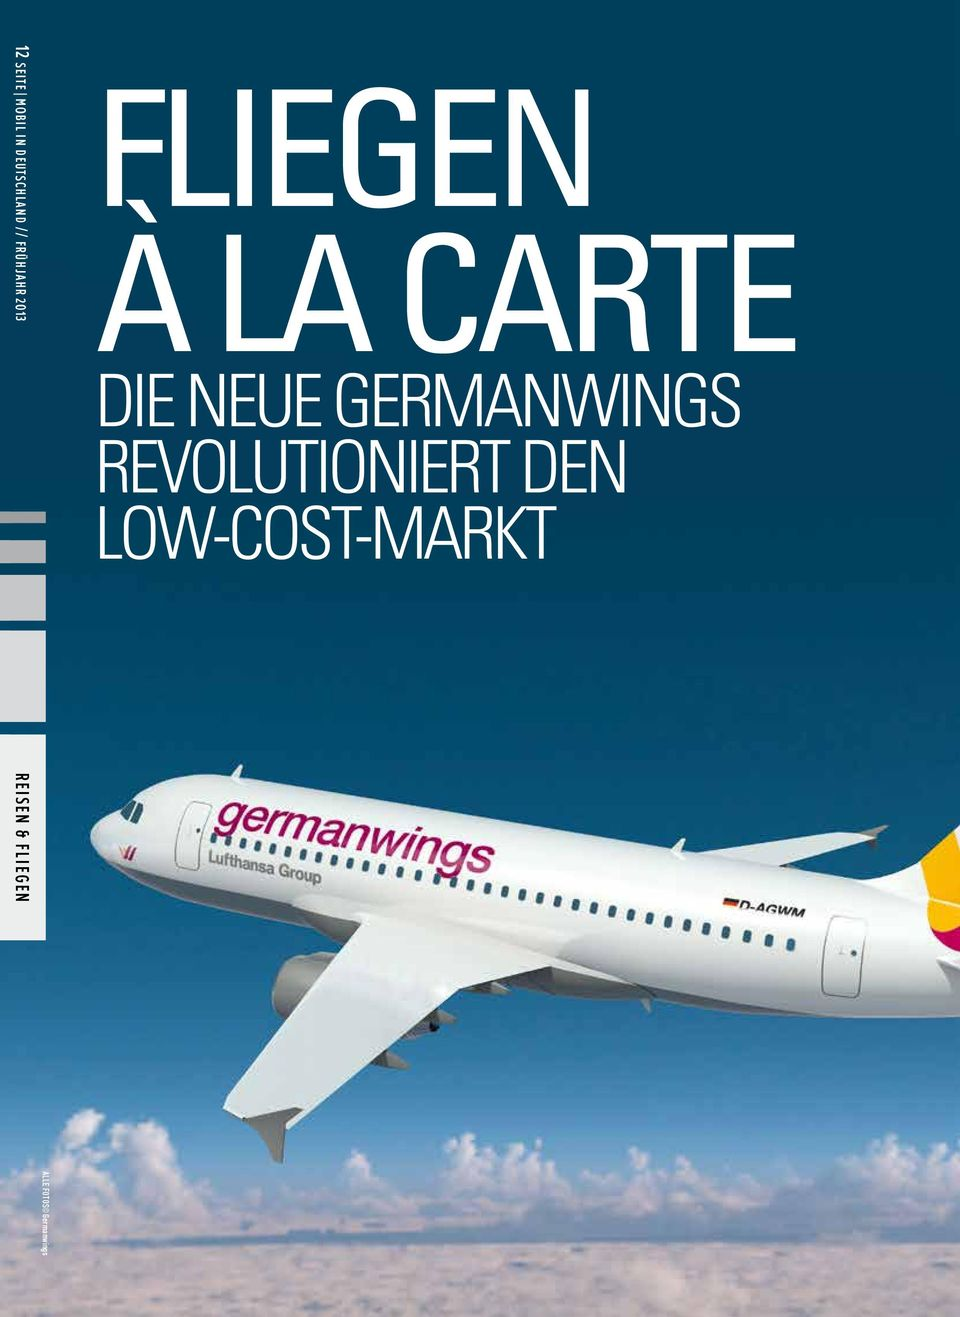 neue Germanwings revolutioniert den